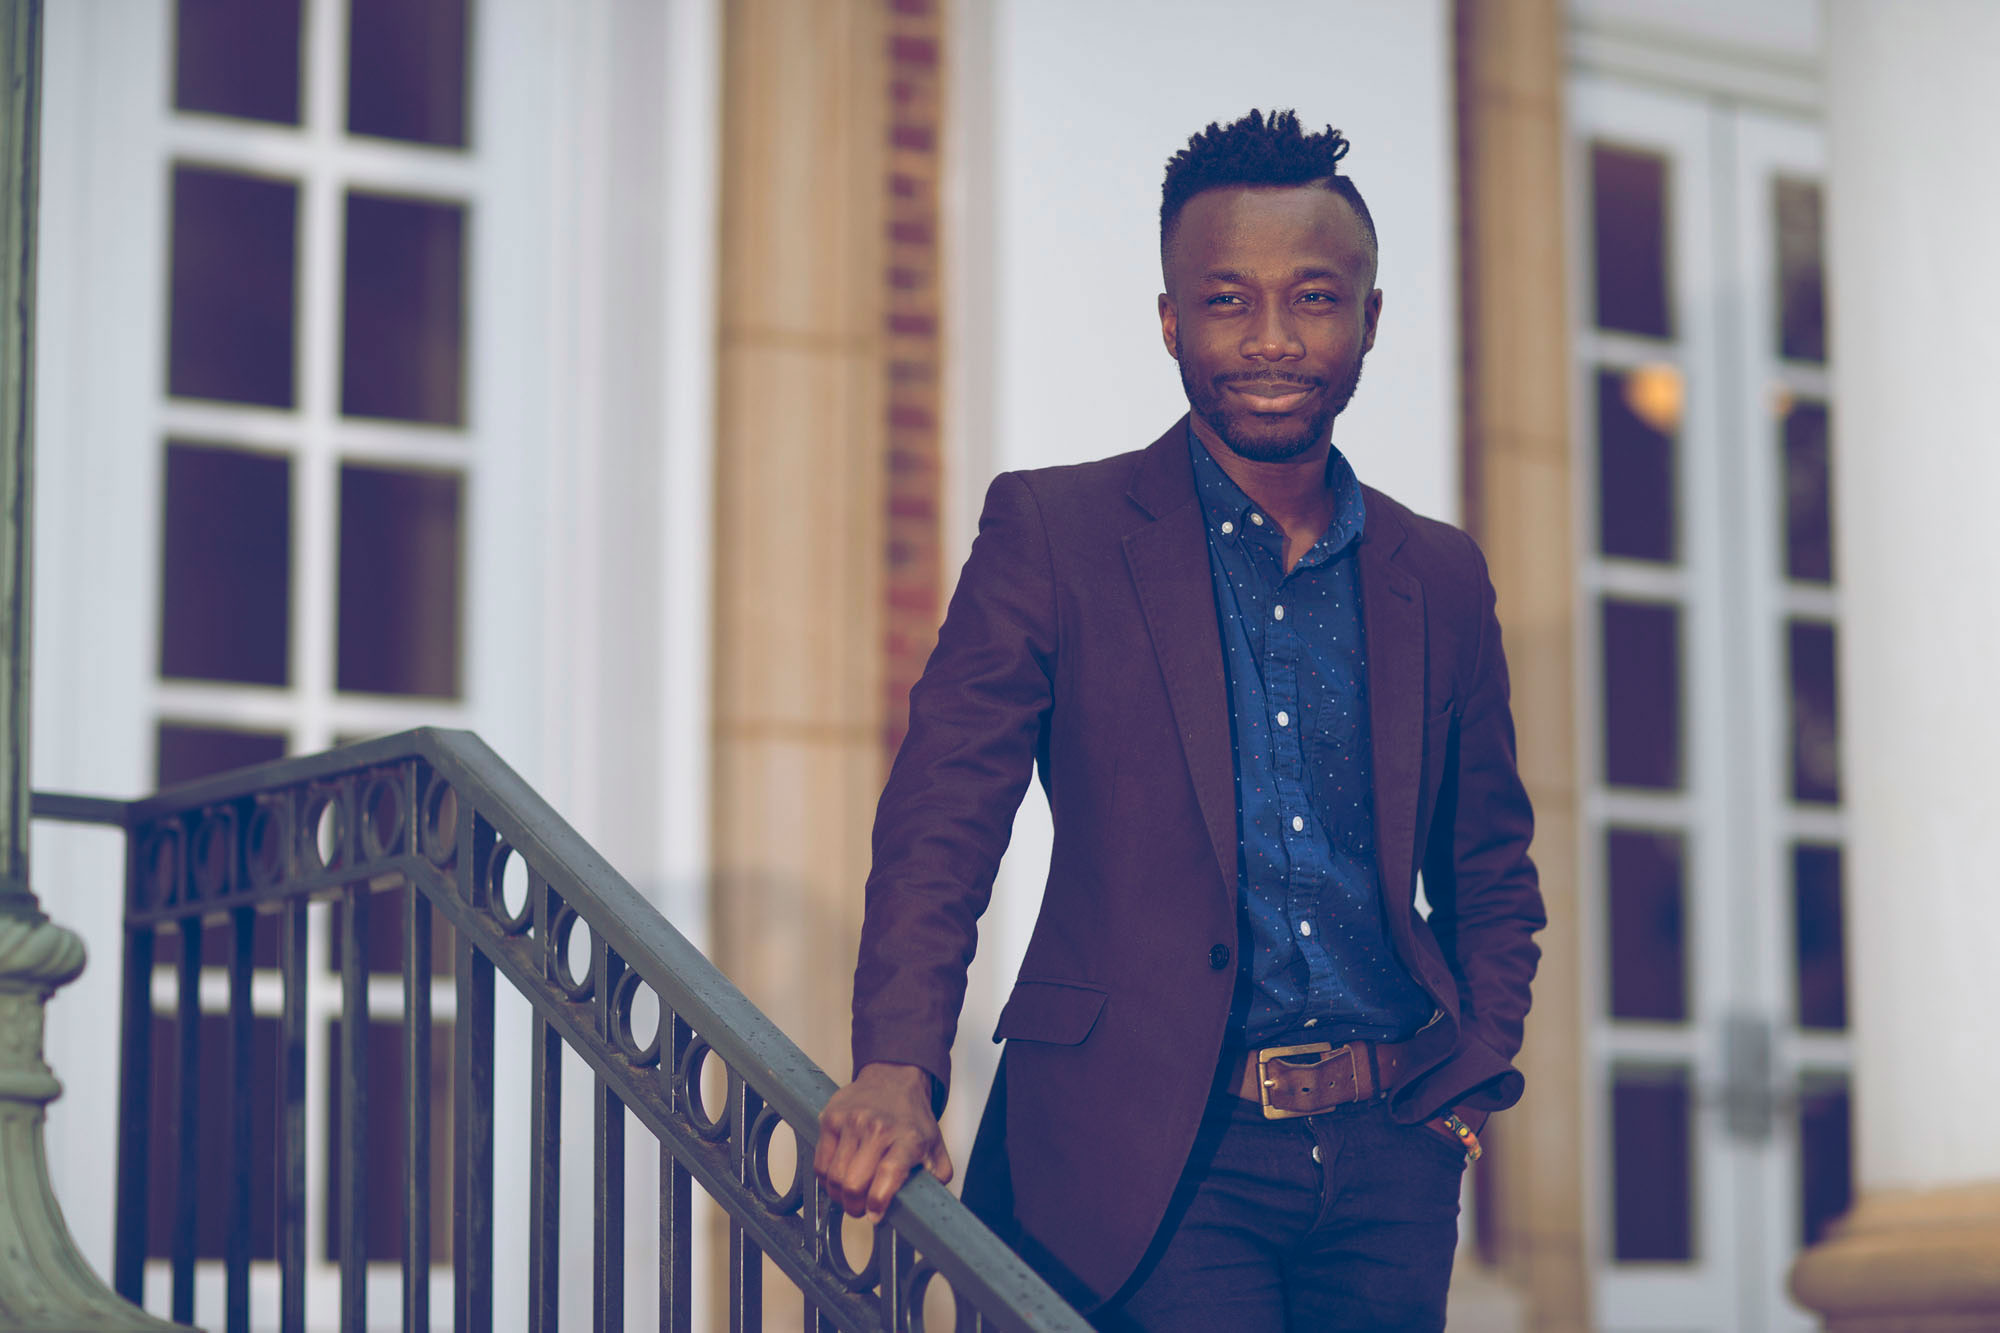 """Edwin Otu investigated the lives of """"sassoi,"""" which translates as """"self-identified effeminate men"""" from the middle and lower classes in Ghana. (Photo by Dan Addison/University Communications)"""